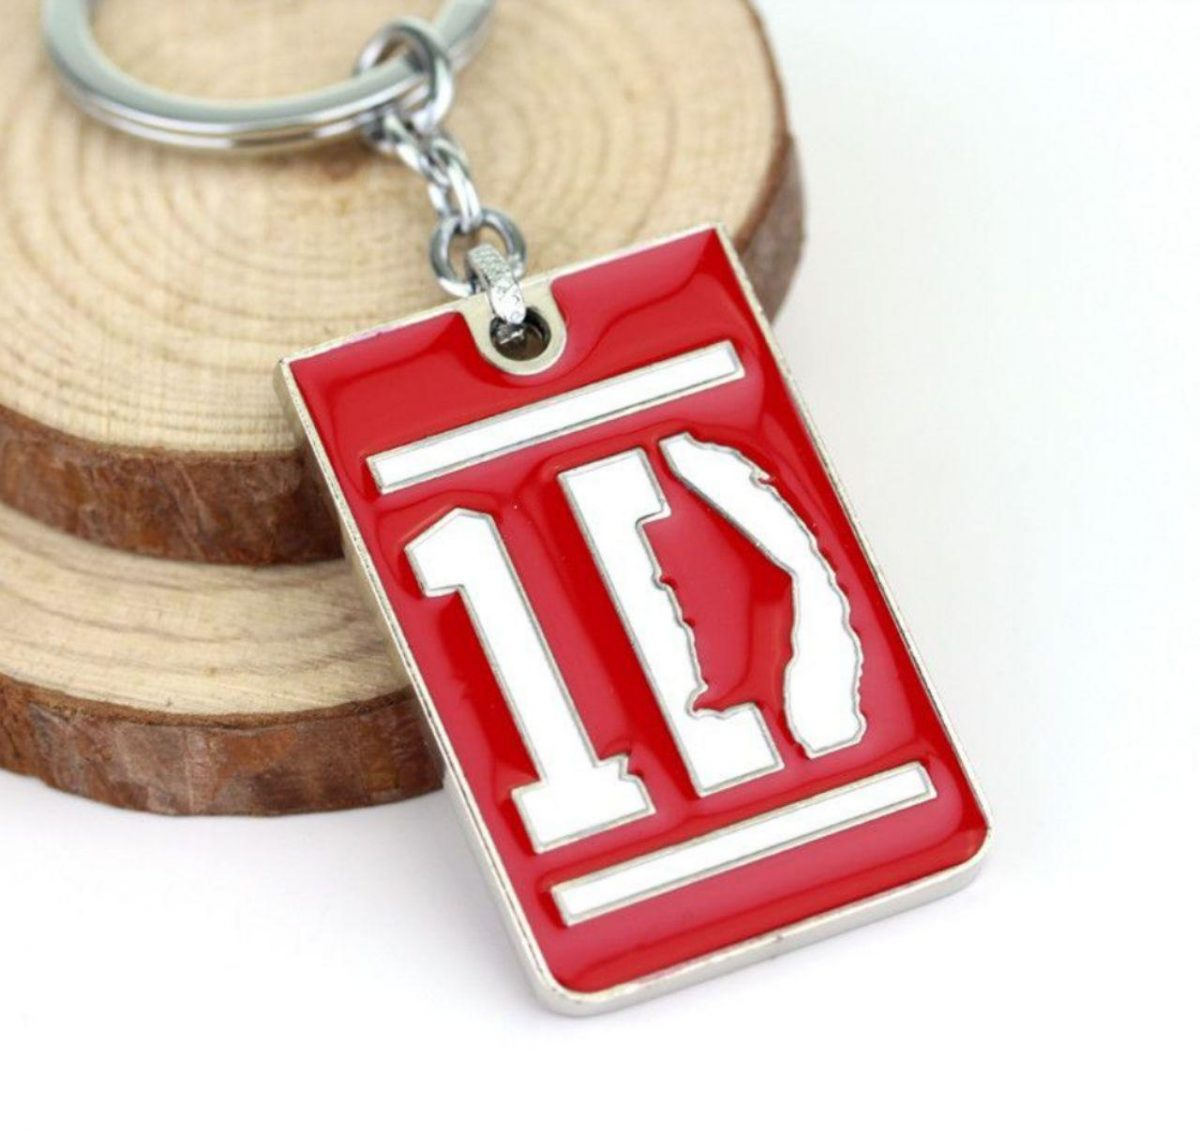 keychain-one direction-1d-product